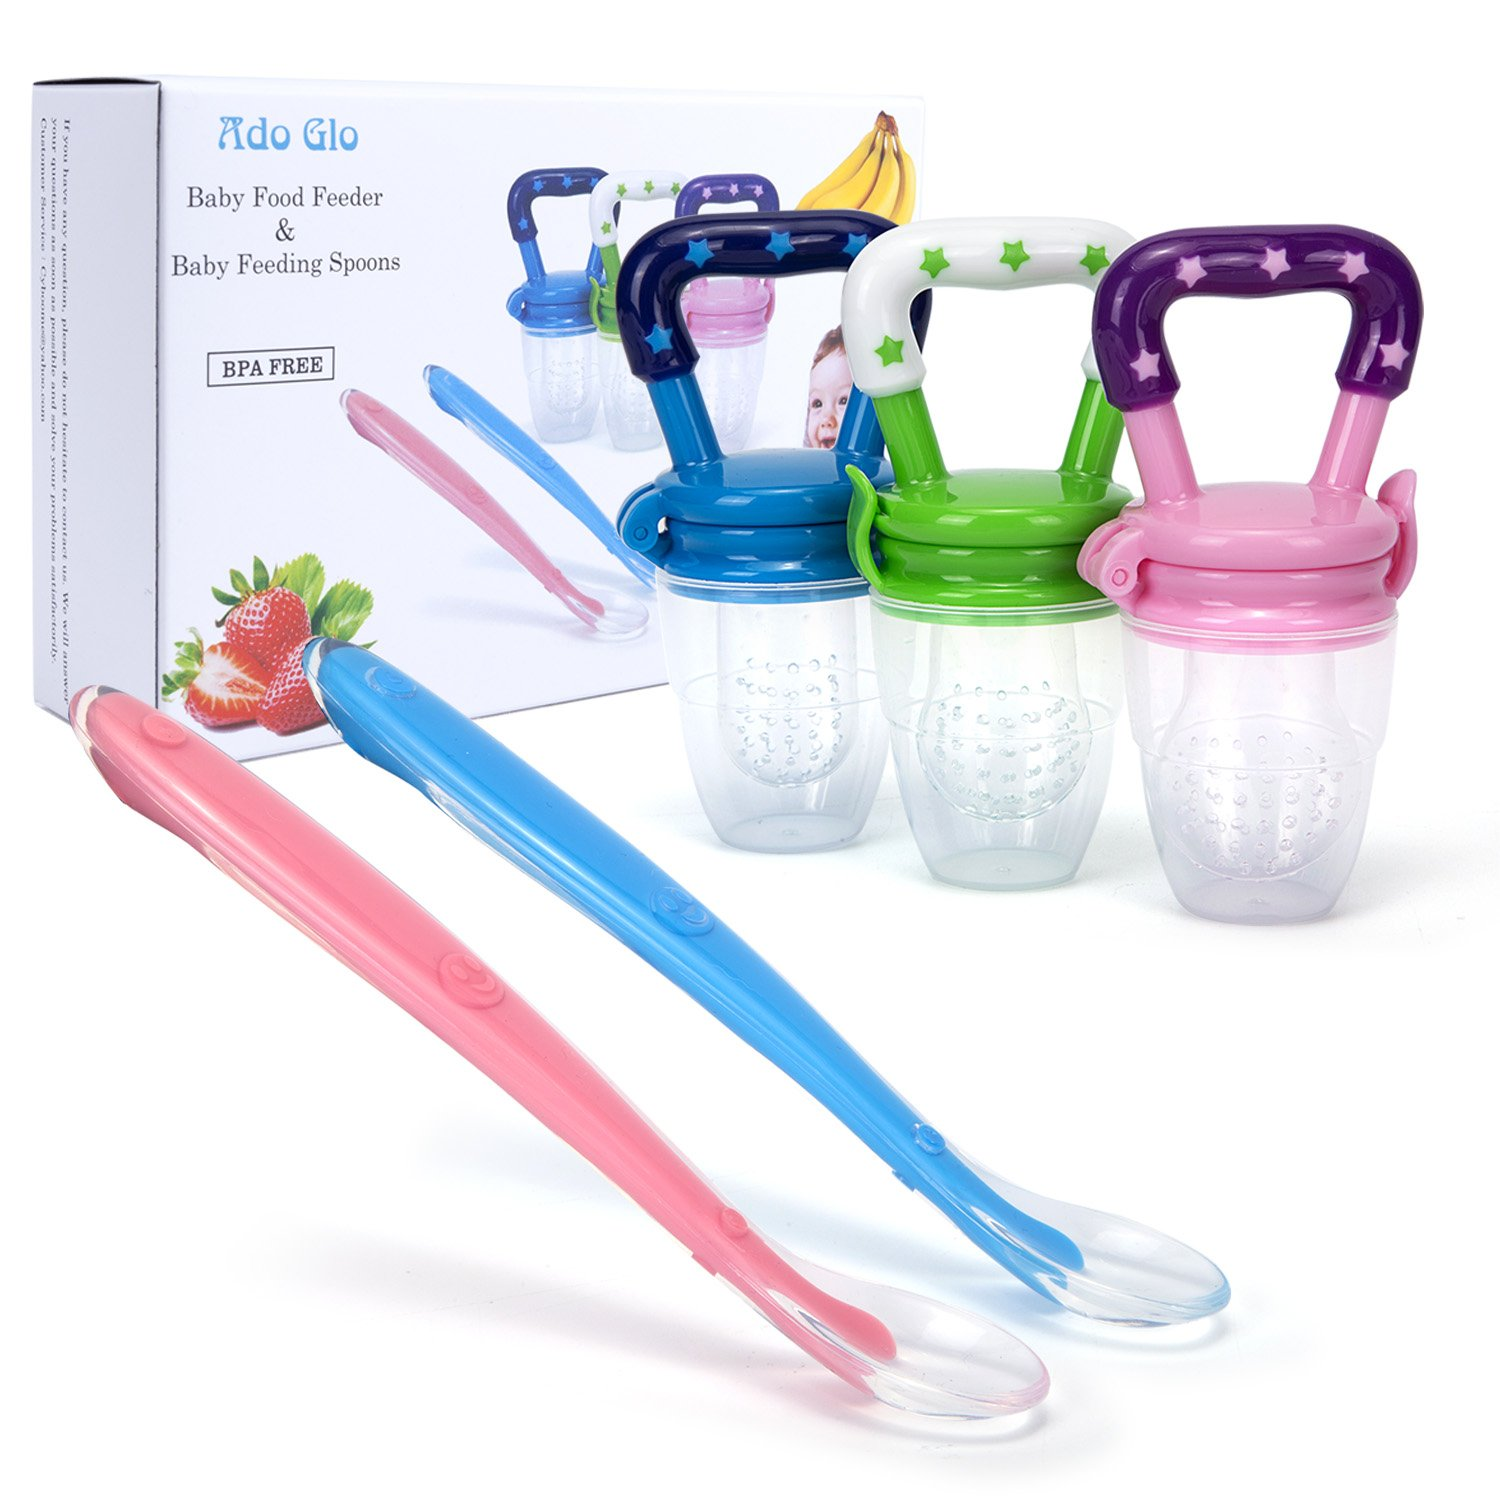 Ado Glo Baby Food Feeder - 3-Pack Fresh Fruit Feeder, Infant Teething Toy Silicone Feeder with 2 Pack Baby Feeding Spoons (Multicolored) YZHB0080008008088